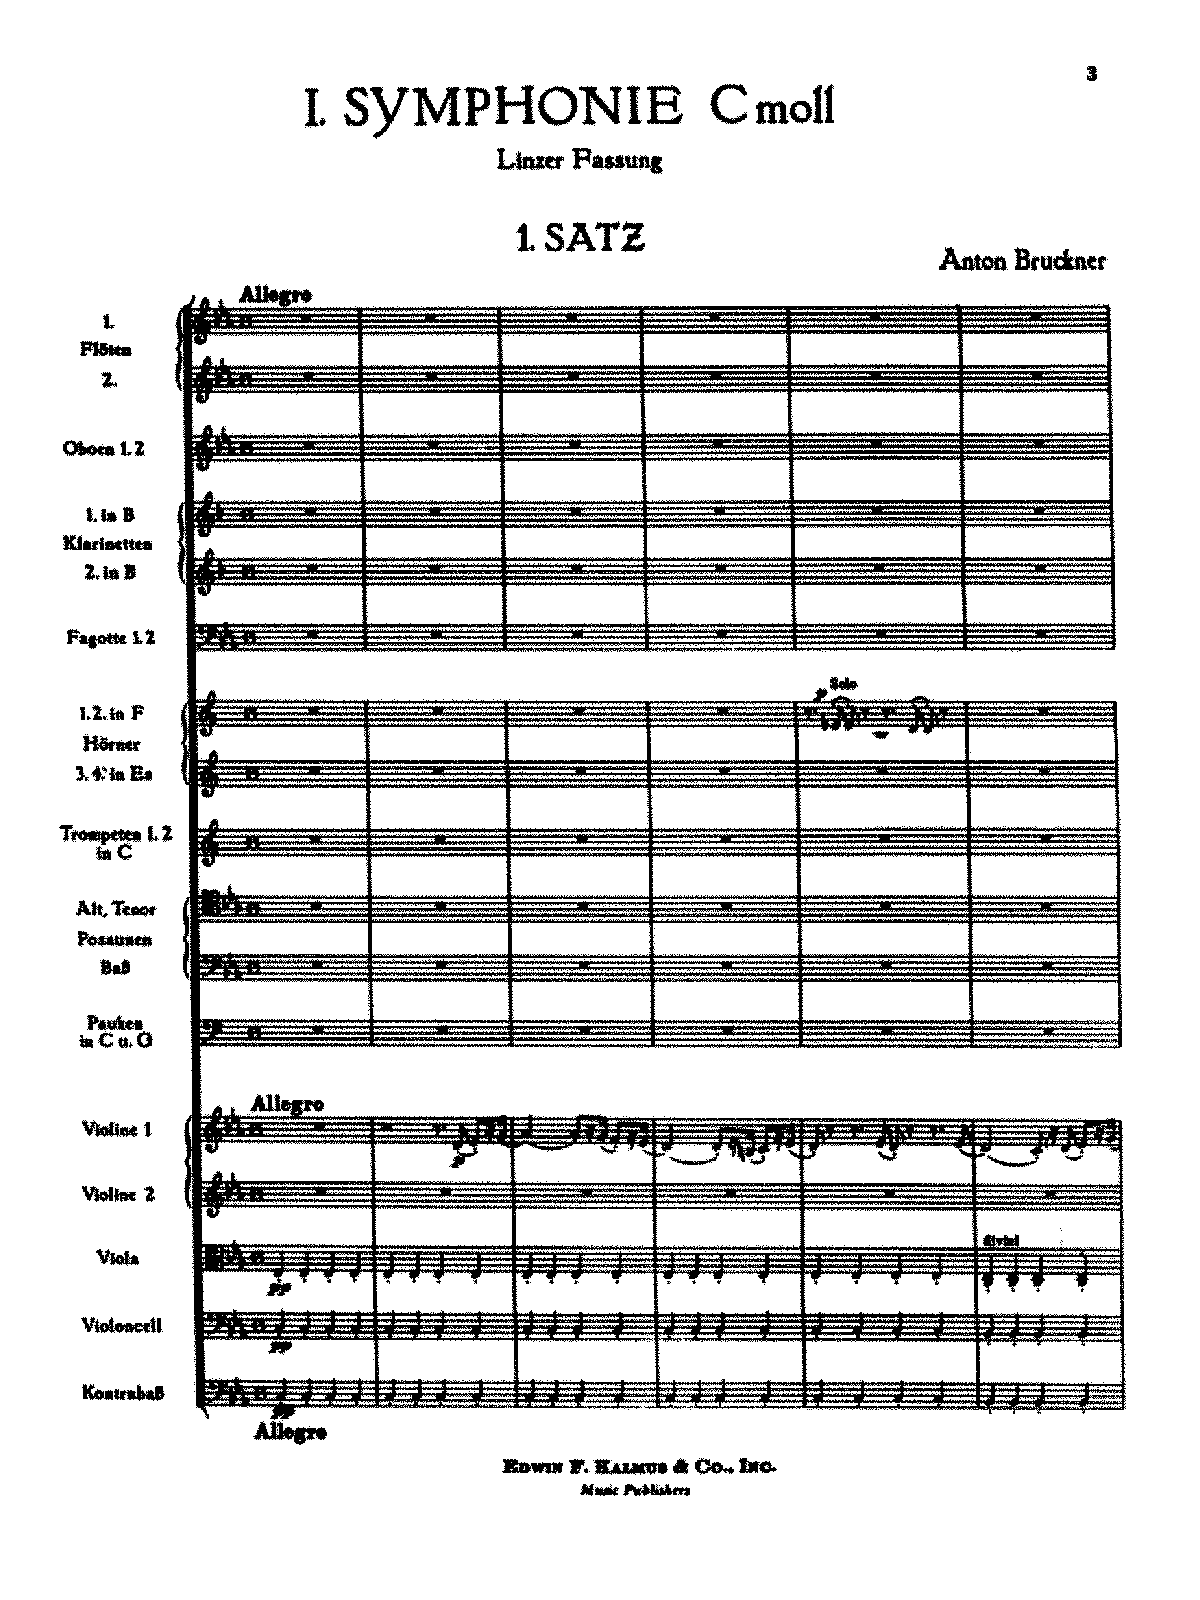 Bruckner symphony no 1 in C minor - 1st mvt.pdf